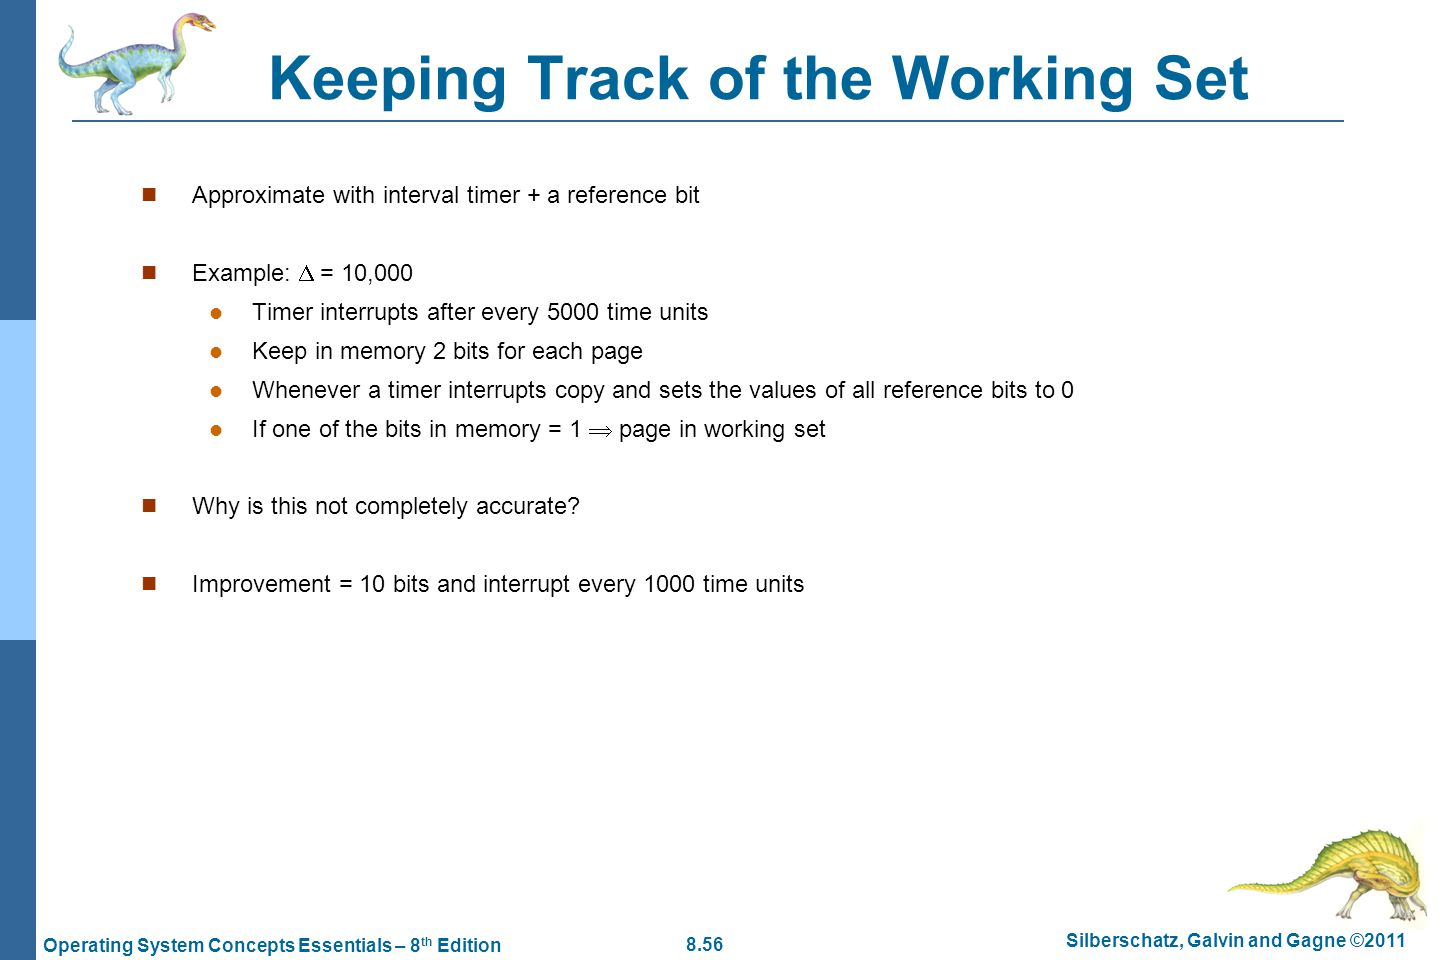 8.56 Silberschatz, Galvin and Gagne ©2011 Operating System Concepts Essentials – 8 th Edition Keeping Track of the Working Set Approximate with interv